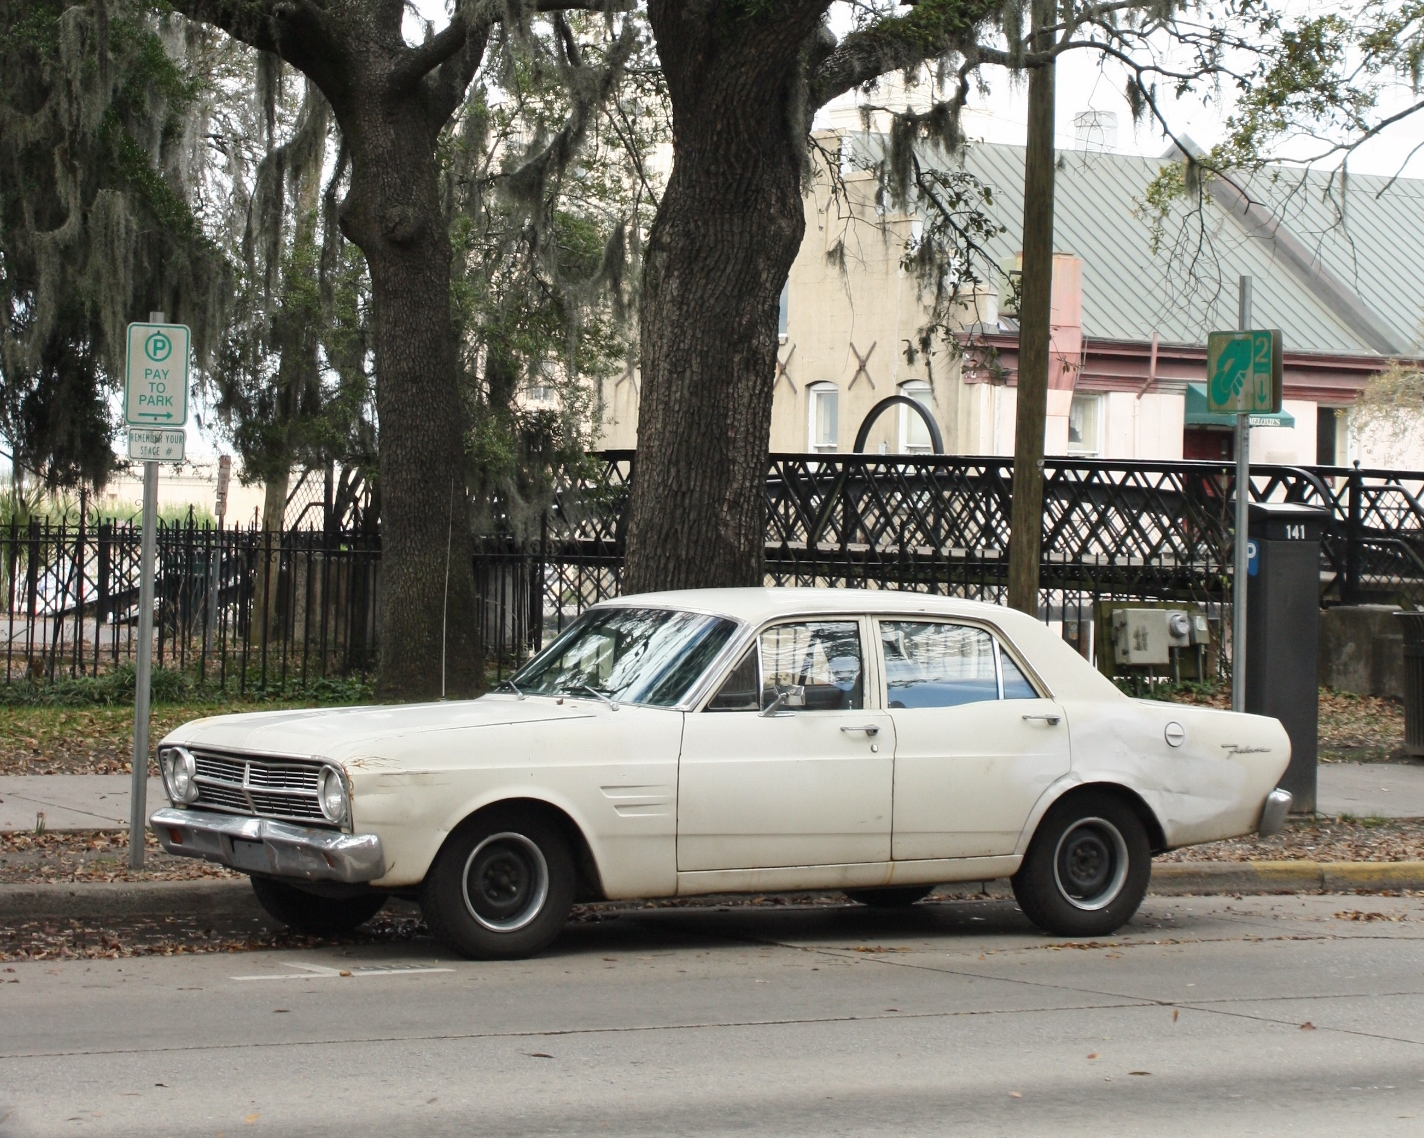 1967 Ford Falcon, Spotted In Savannah, Georgia. 1960s Beaters Are  Nonexistent In Canada